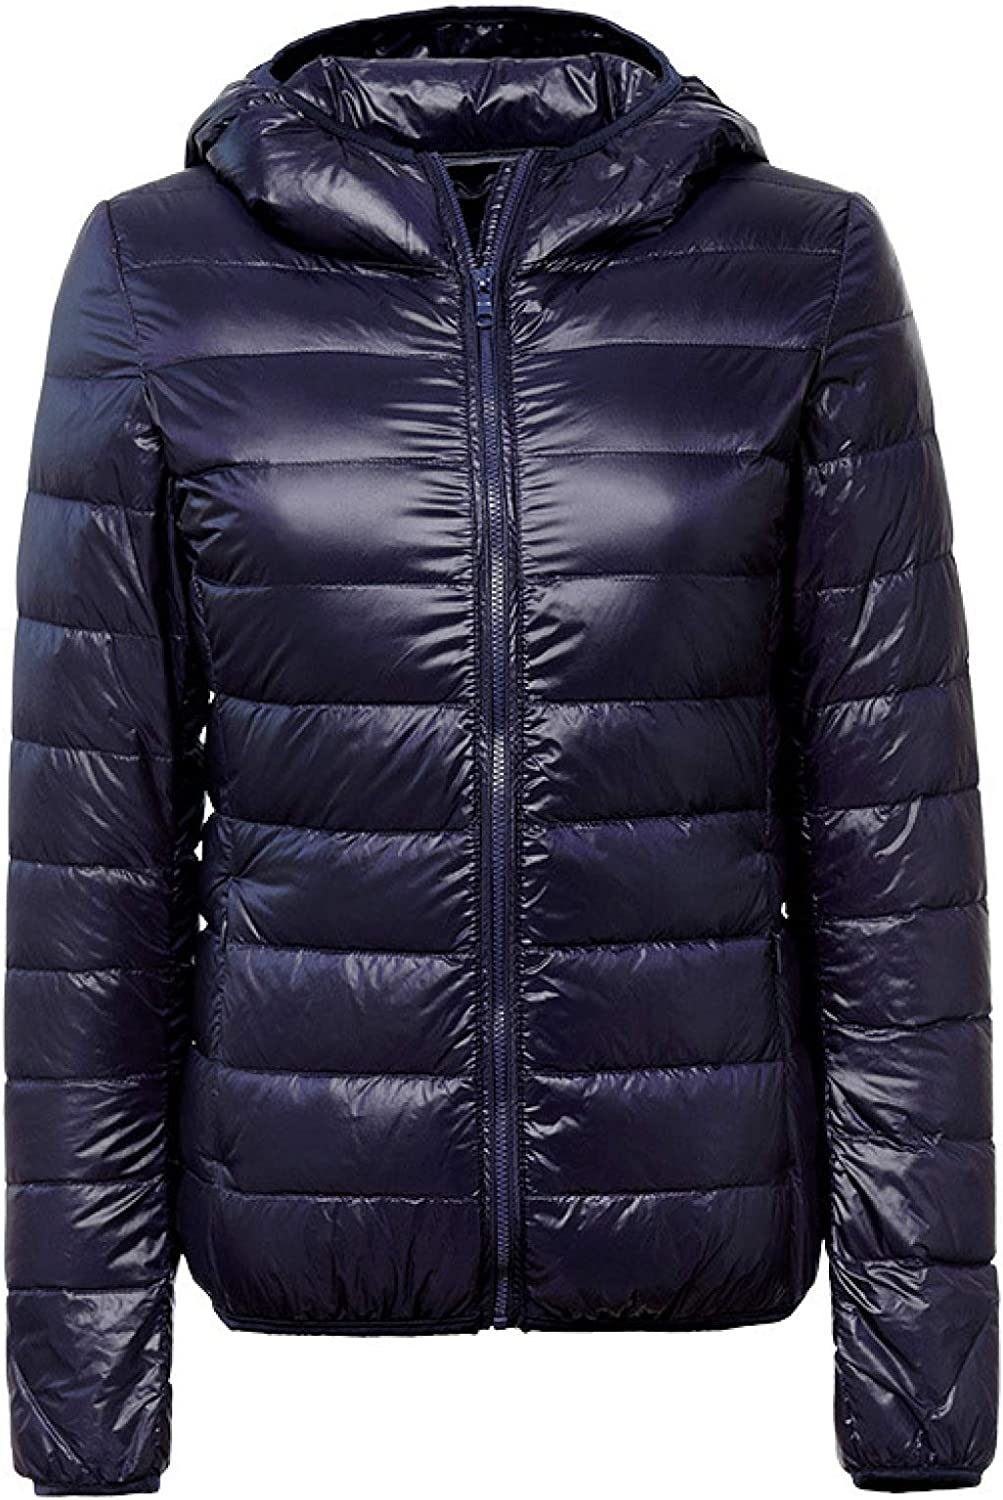 Women's Quilted Lightweight Jackets with Hoodies Winter Coat